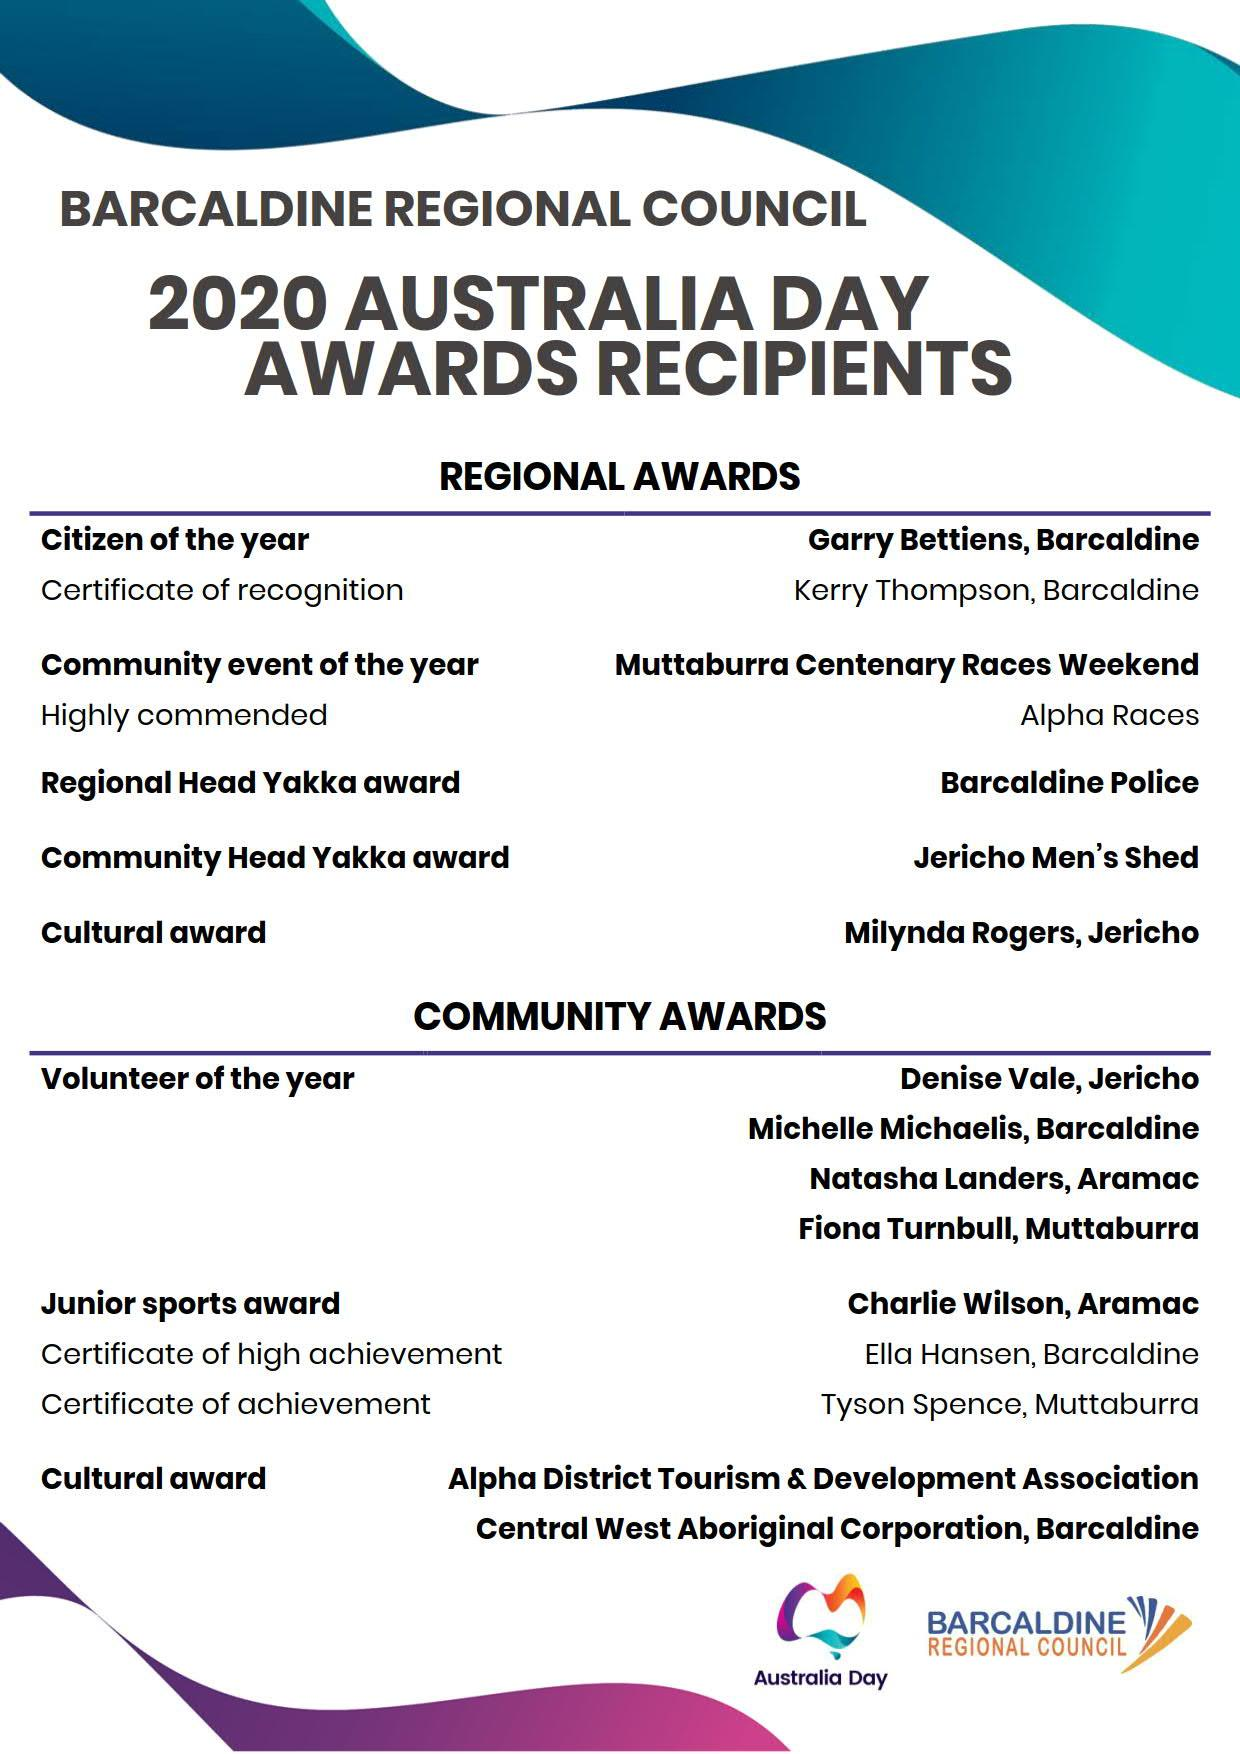 2020 Australia Day Award recipients